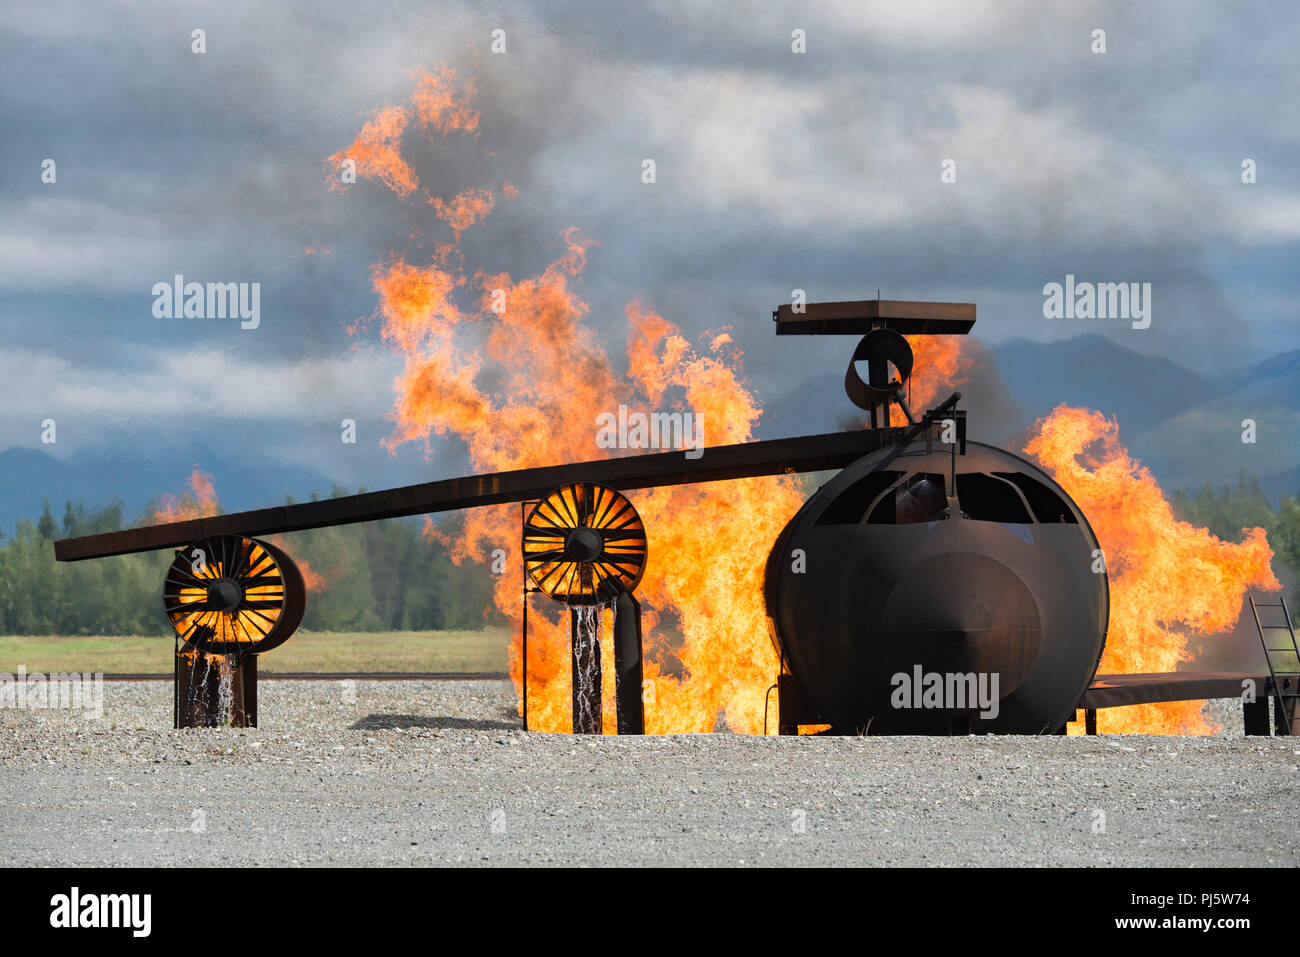 An aircraft fire training simulator is engulfed in flames